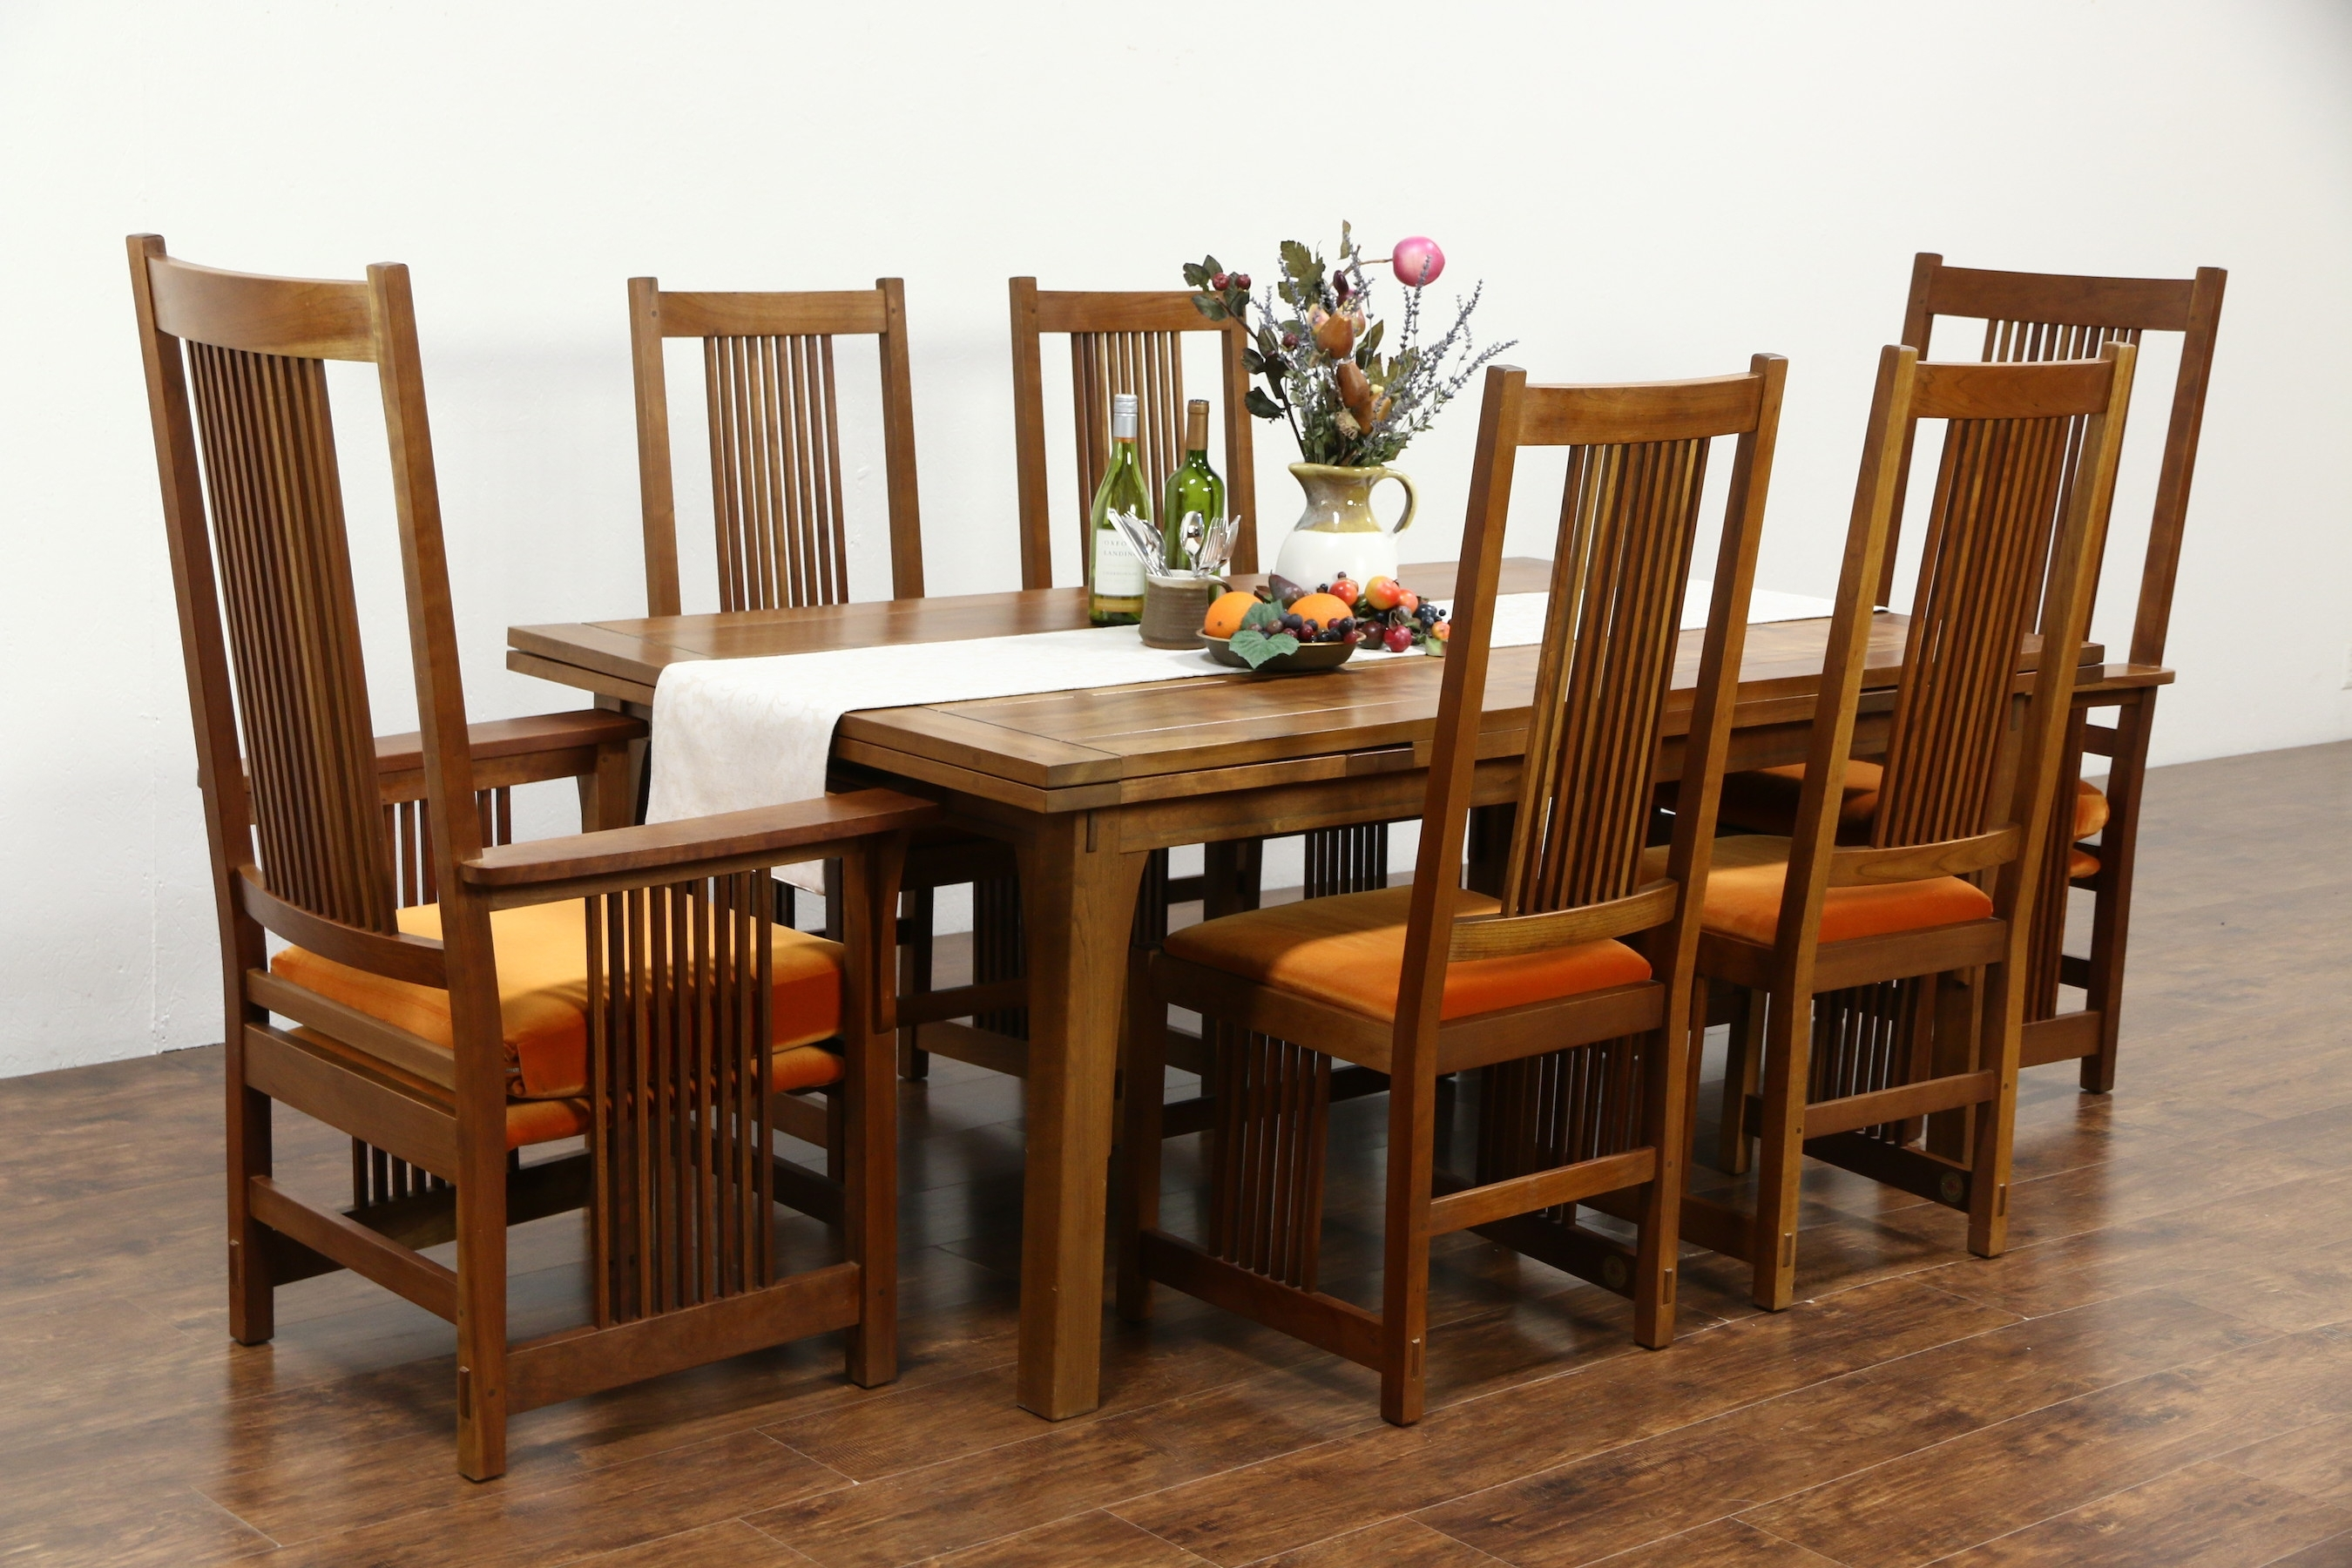 Sold – Stickley Signed Cherry Craftsman Design 1995 Dining Set Throughout Latest Craftsman Upholstered Side Chairs (View 18 of 20)